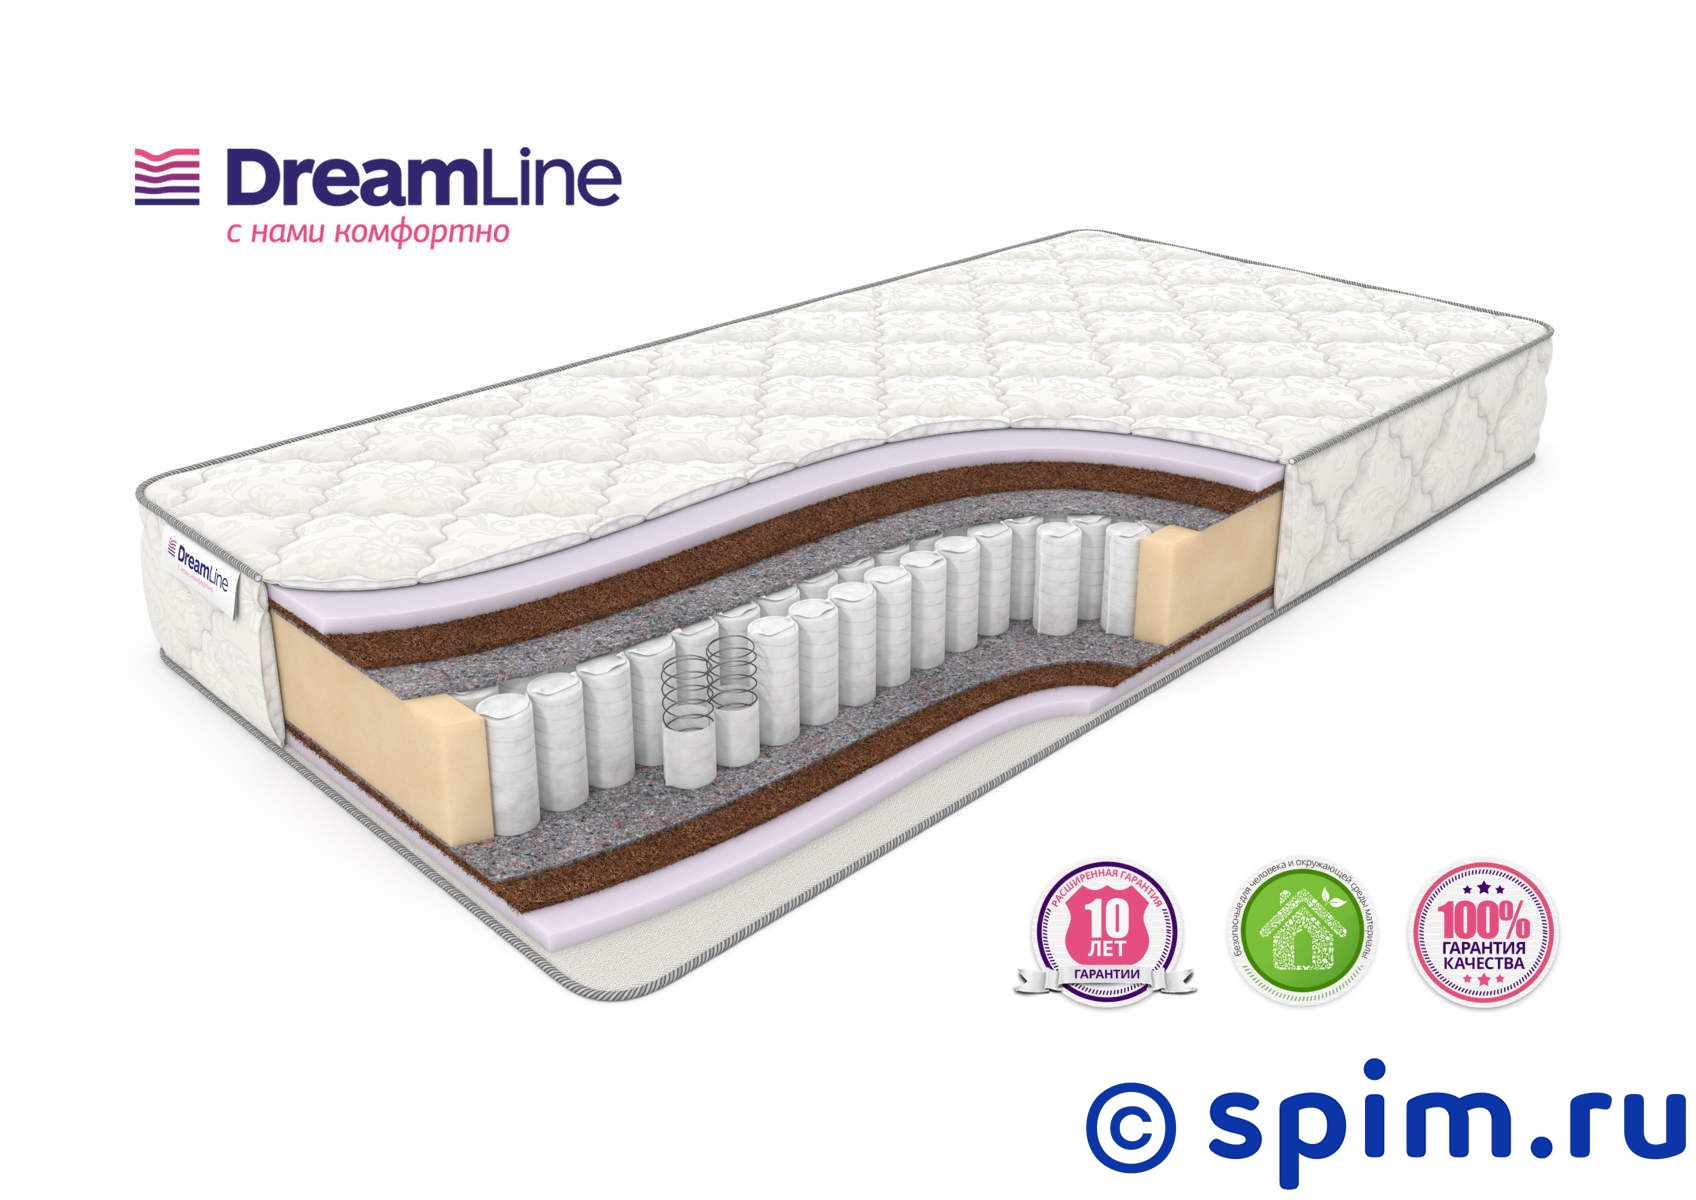 Матрас DreamLine Eco Foam Hard Tfk 160х200 см